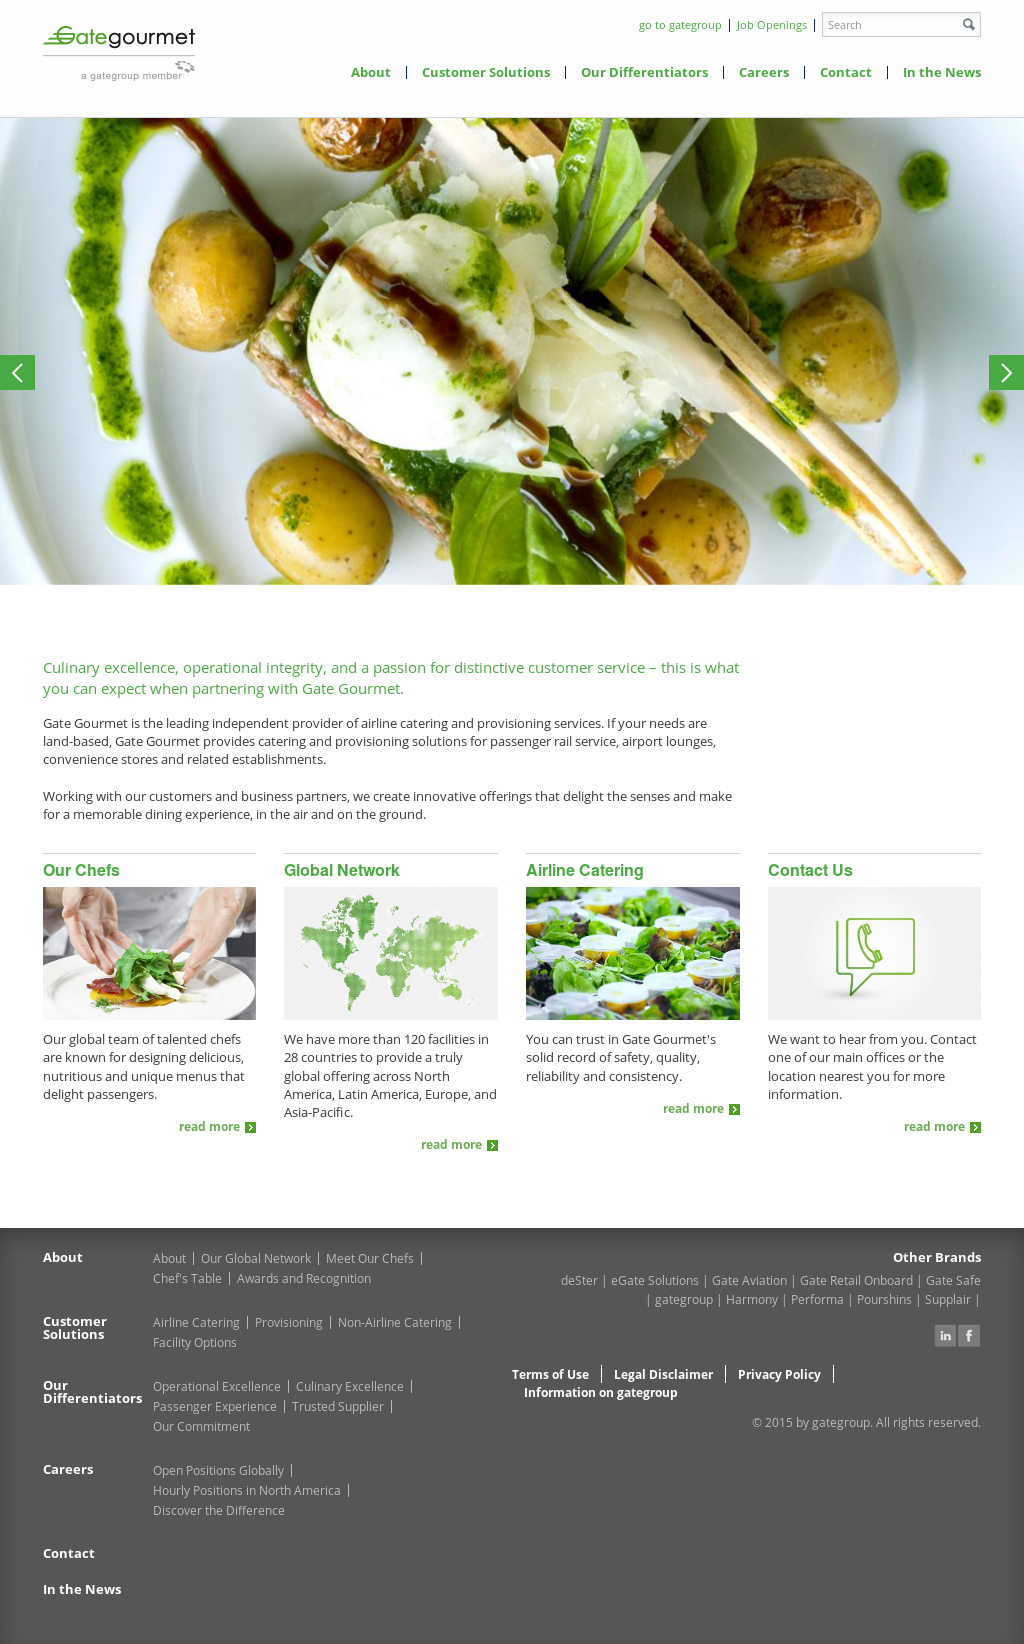 Gate Gourmet Competitors, Revenue and Employees - Owler Company Profile